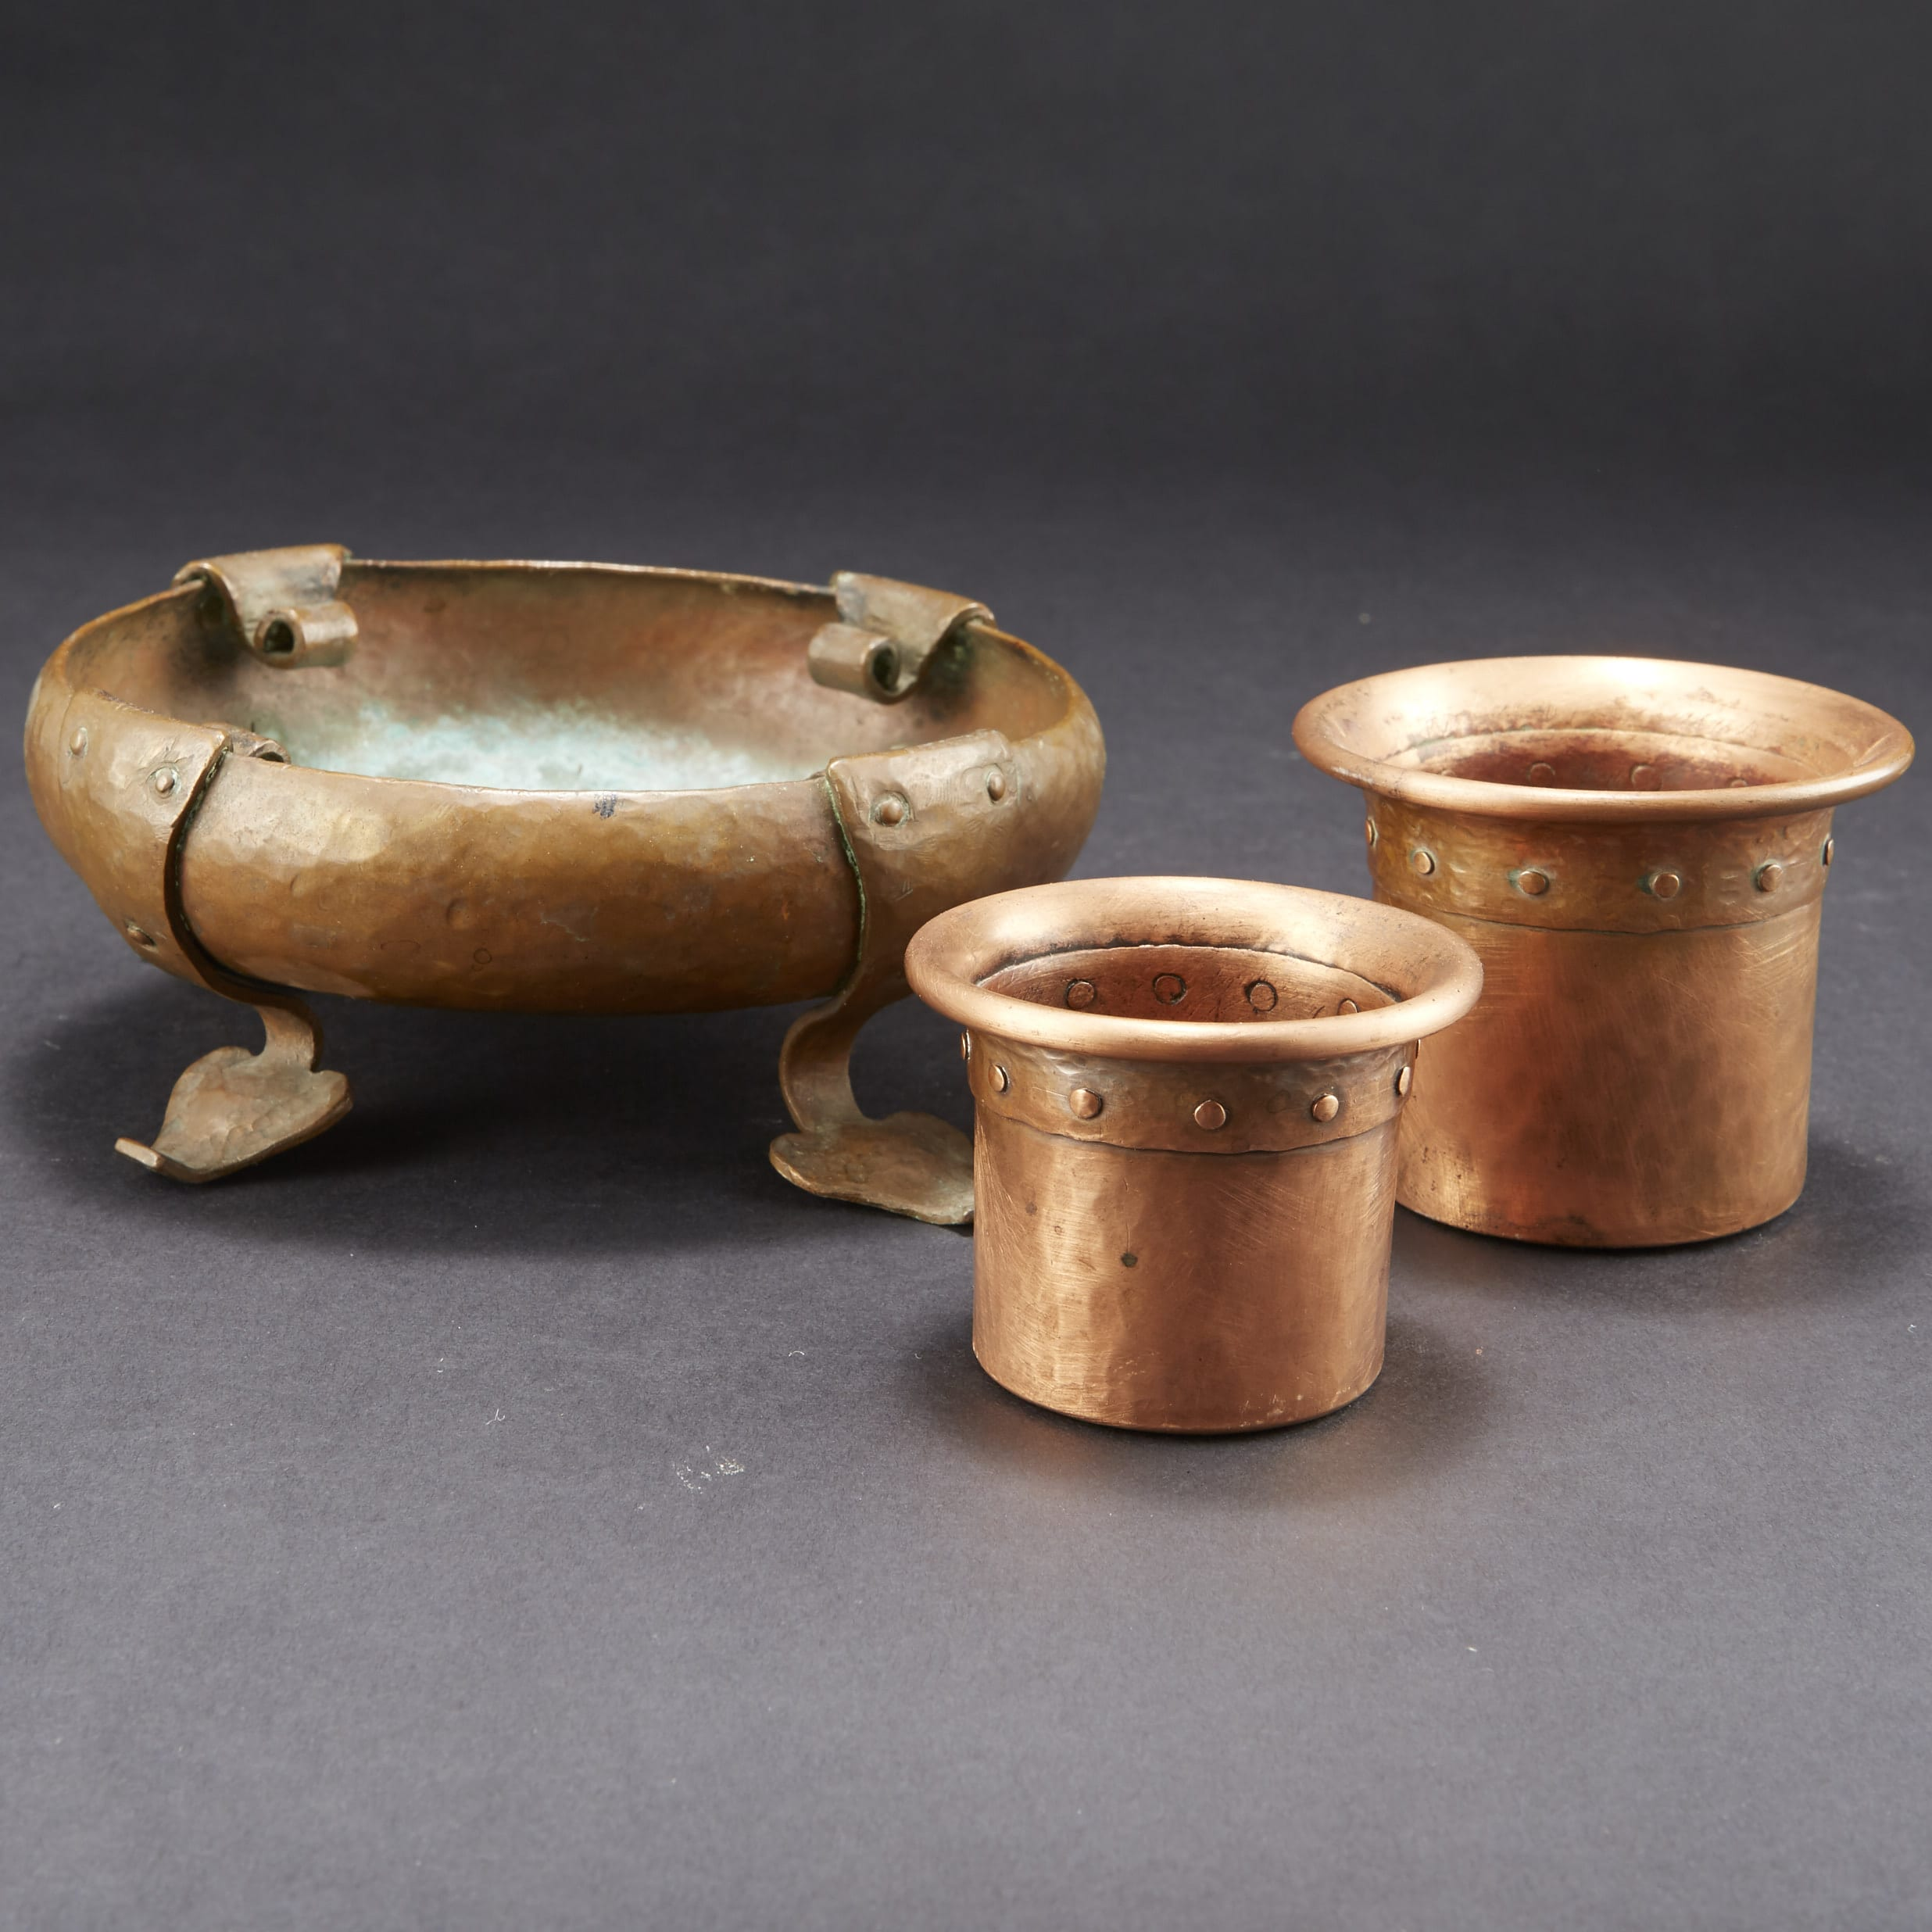 Lot 158: Group of Arts and Crafts Onondaga Copper Pieces